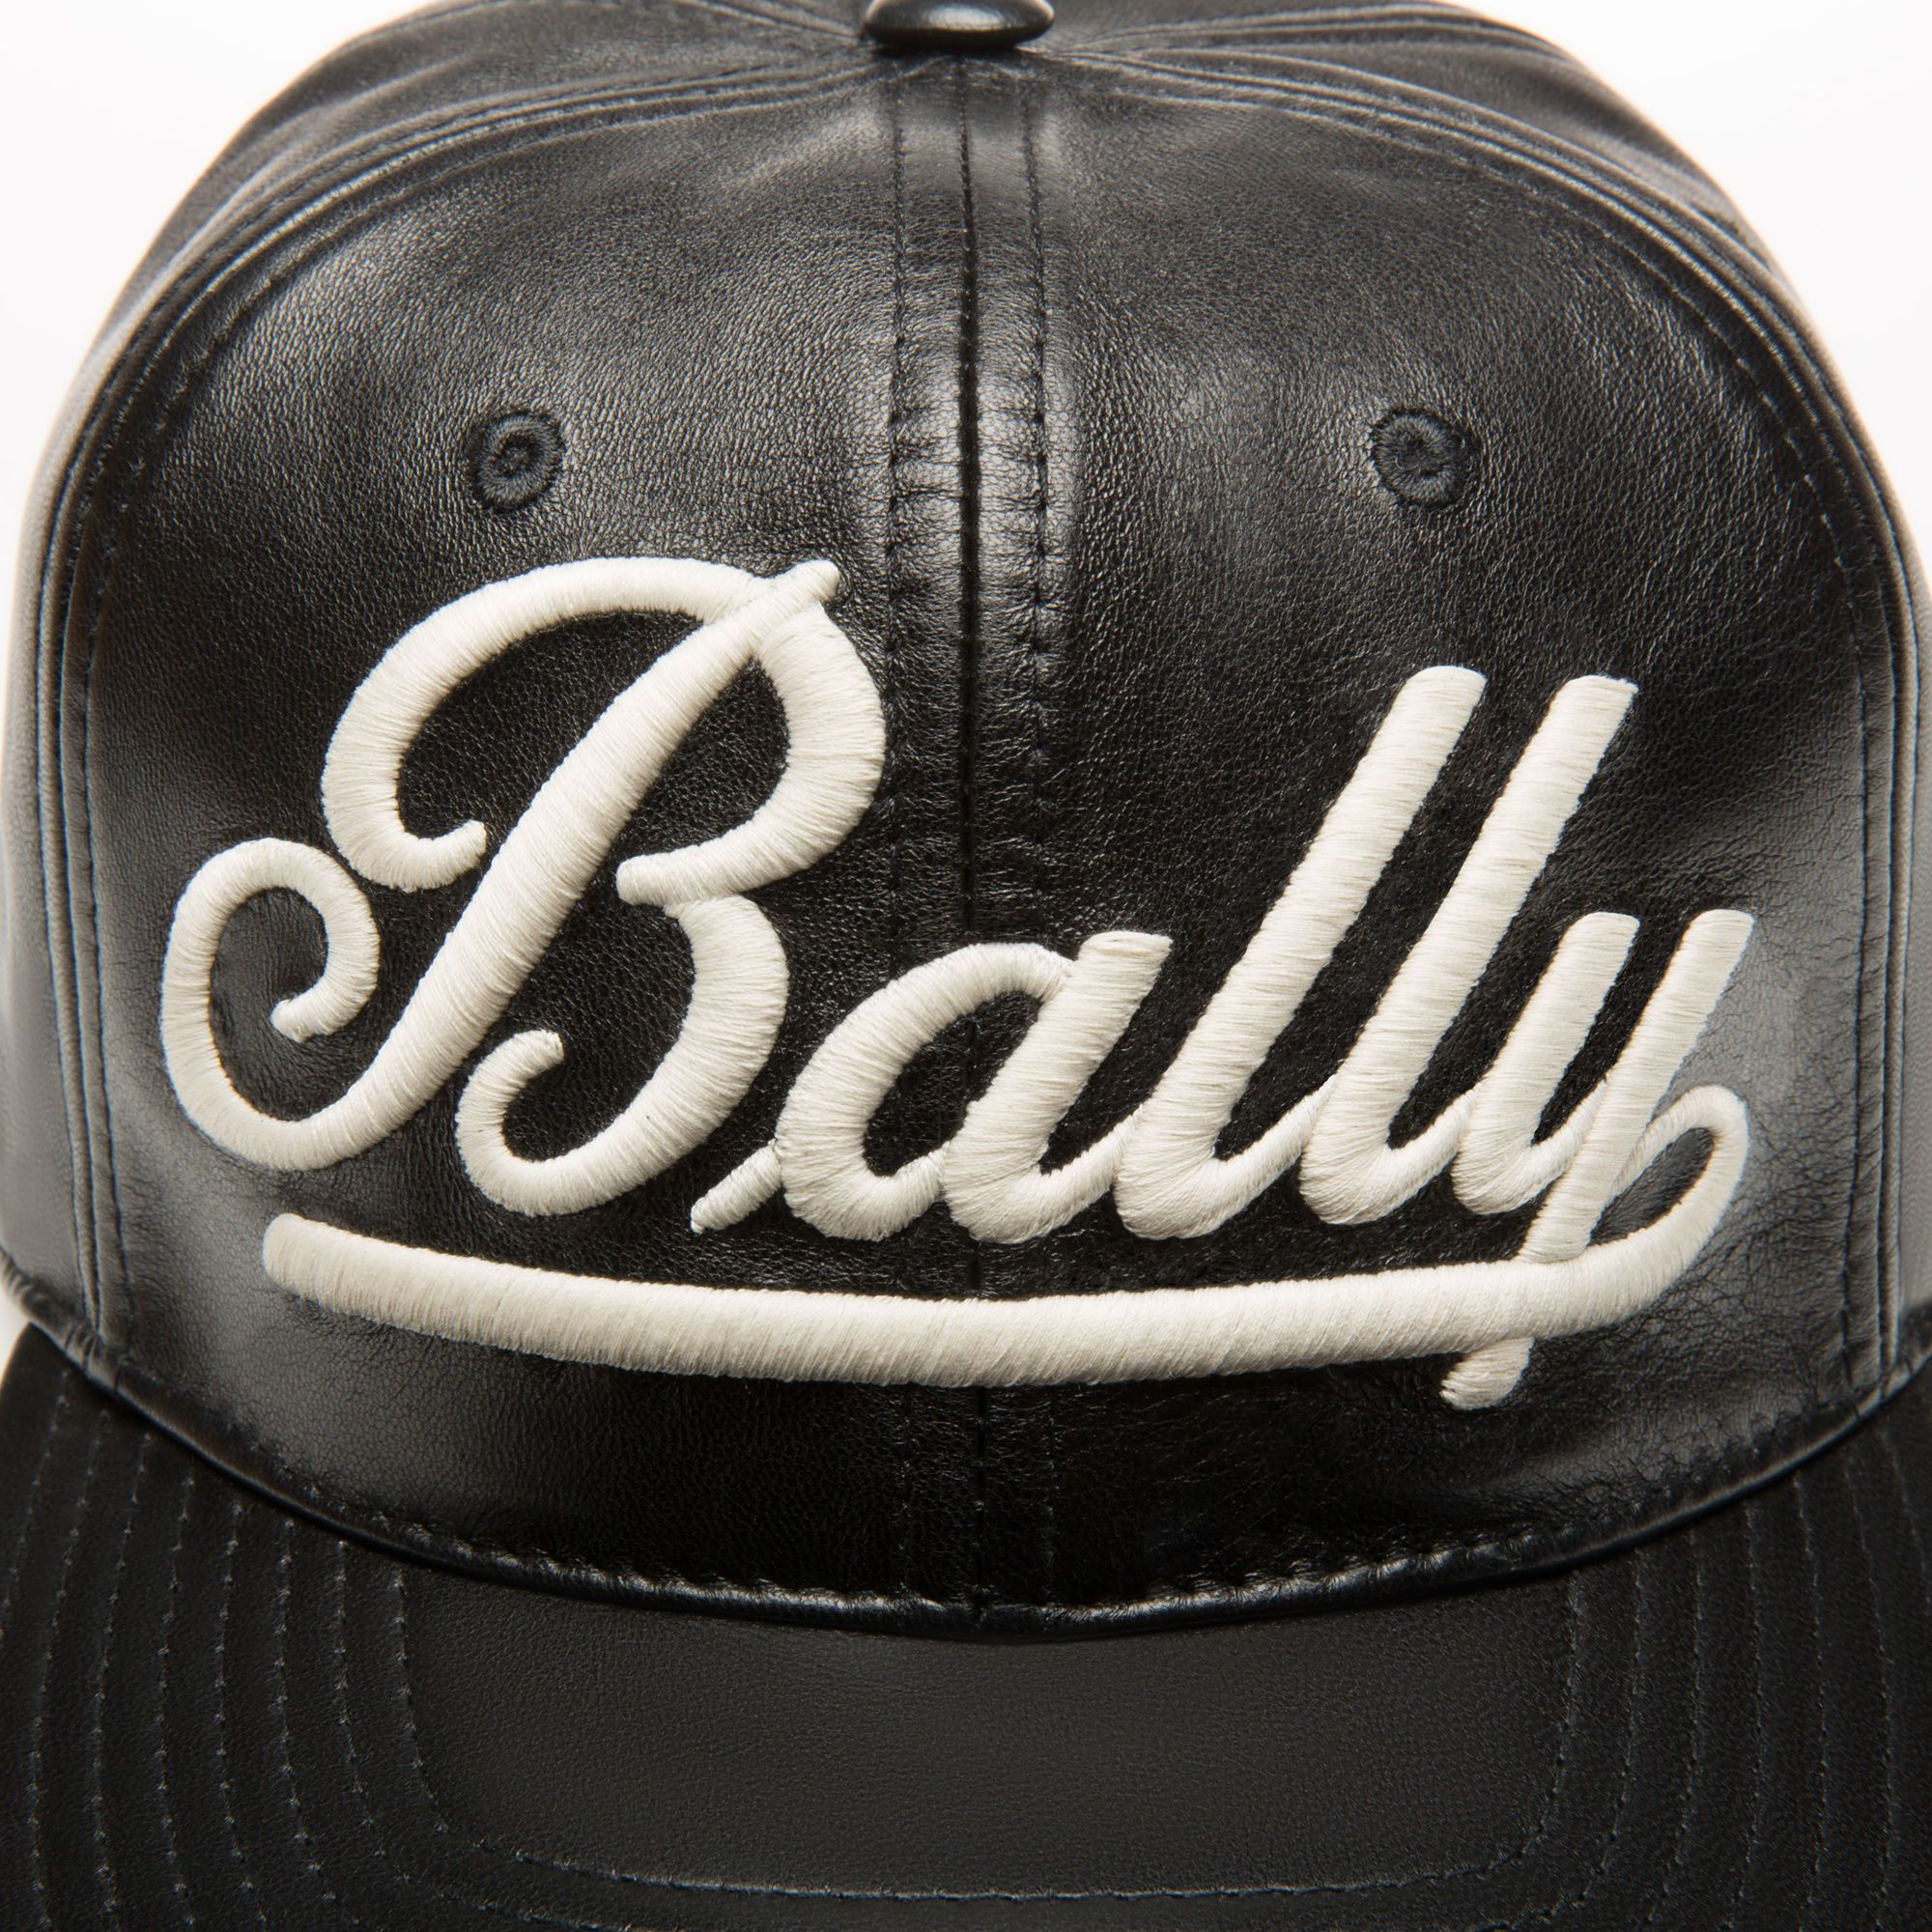 Bally Logo - BALLY LOGO BASEBALL CAP| Men's Hats | Bally